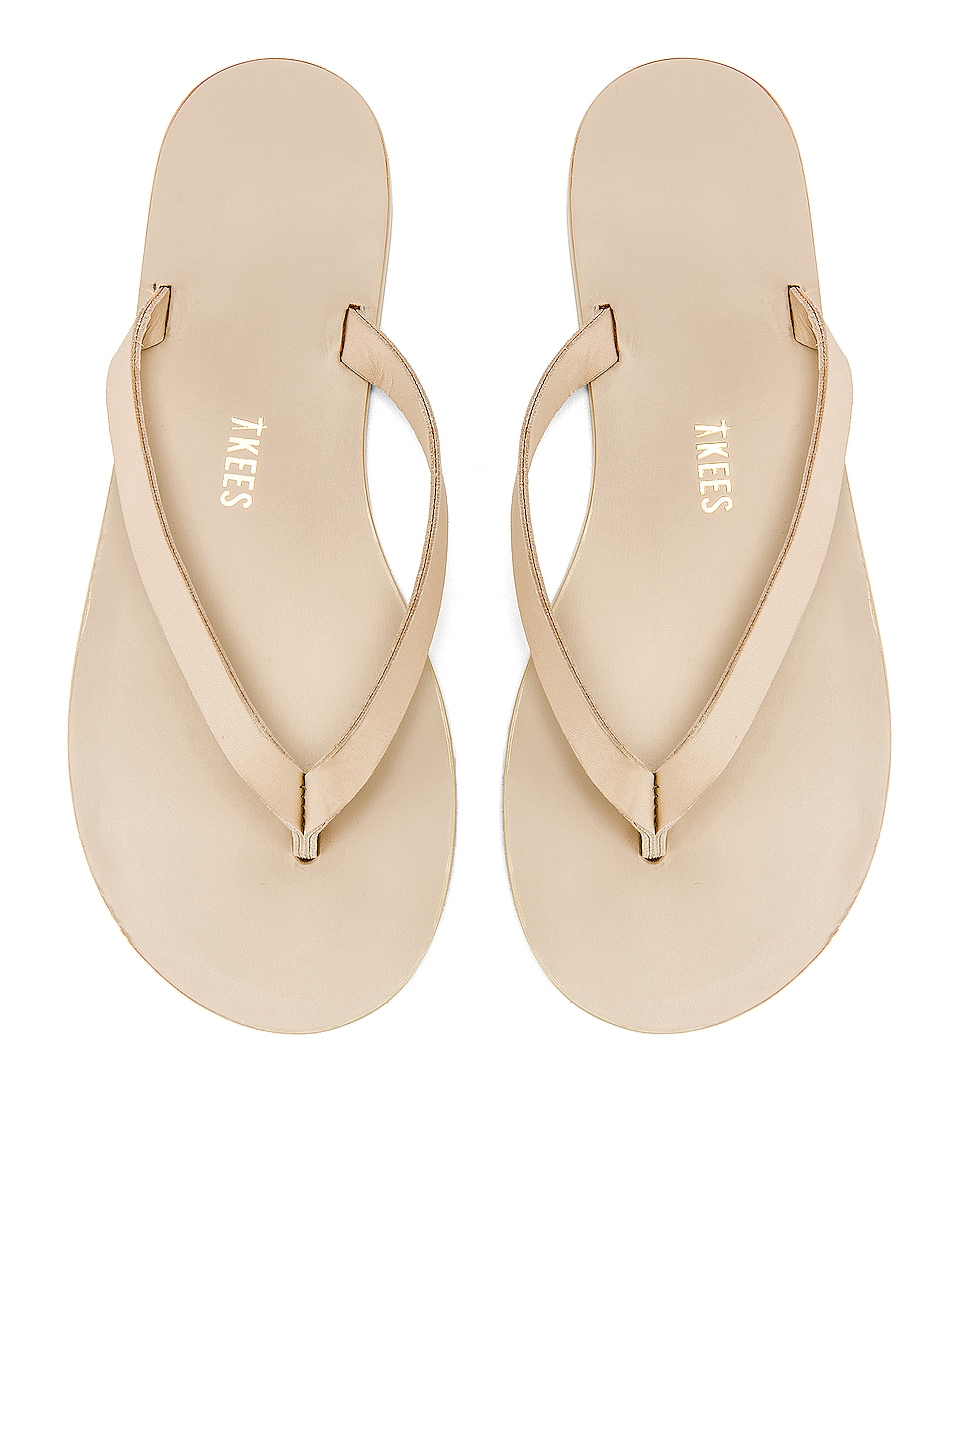 TKEES Jane Sandal in Bone